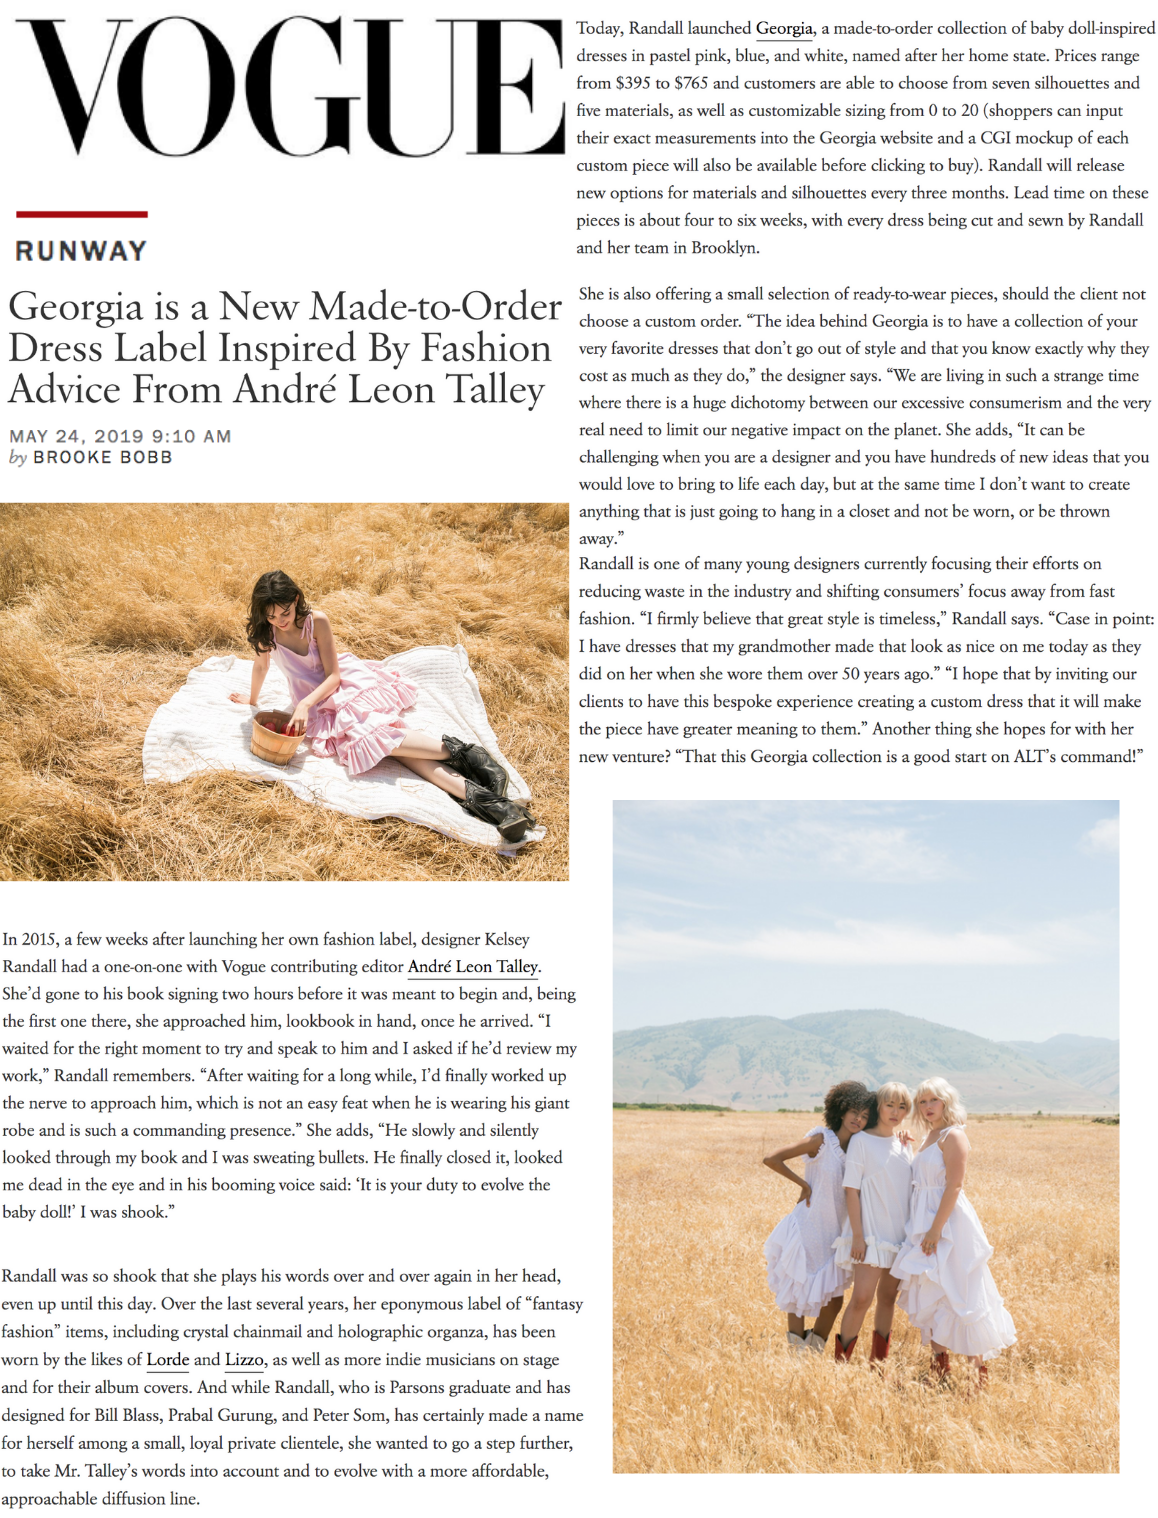 vOGUE MAGAZINE BROOKE BOBB GEORGIA BY KELSEY RANDALL MADE-TO-ORDER MADE-TO-MEASURE CUSTOM BESPOKE DRESS MADE IN NEW YORK CITY NYC MADE IN AMERICA ETHICAL SUSTAINABLE FASHION HANDMADE CRAFTSMANSHIP SLOW FASHION EXCLUSIVE LIMITED SIZE INCLUSIVE